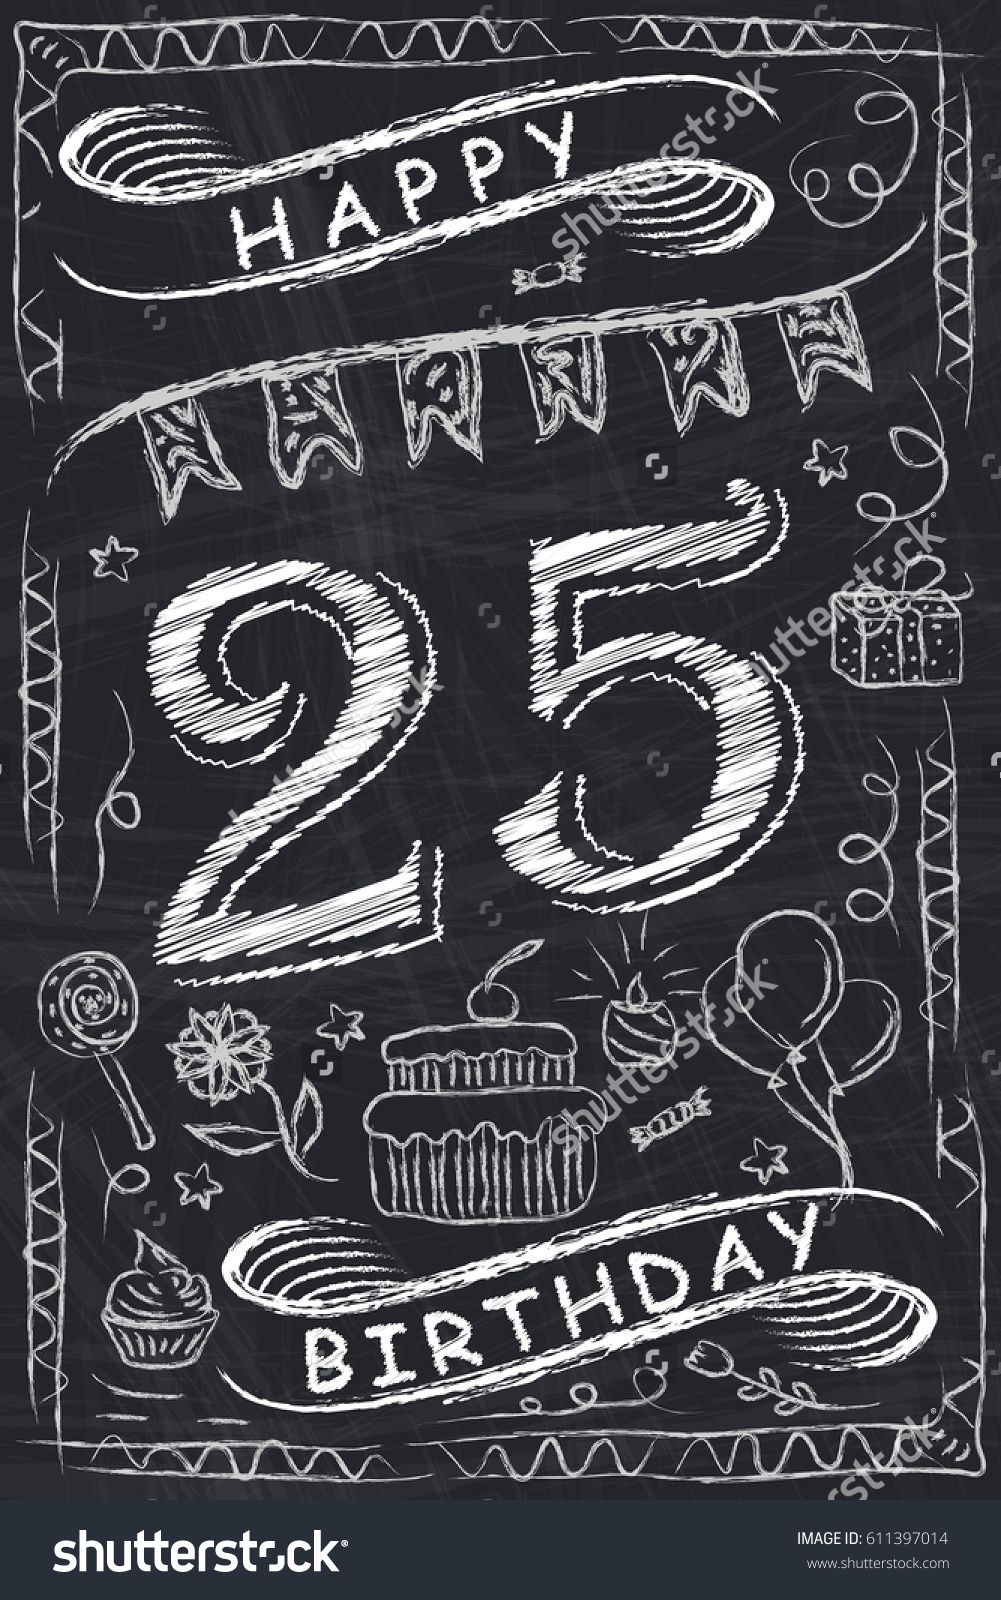 Anniversary Happy Birthday Card Design On Chalkboard 25 Years